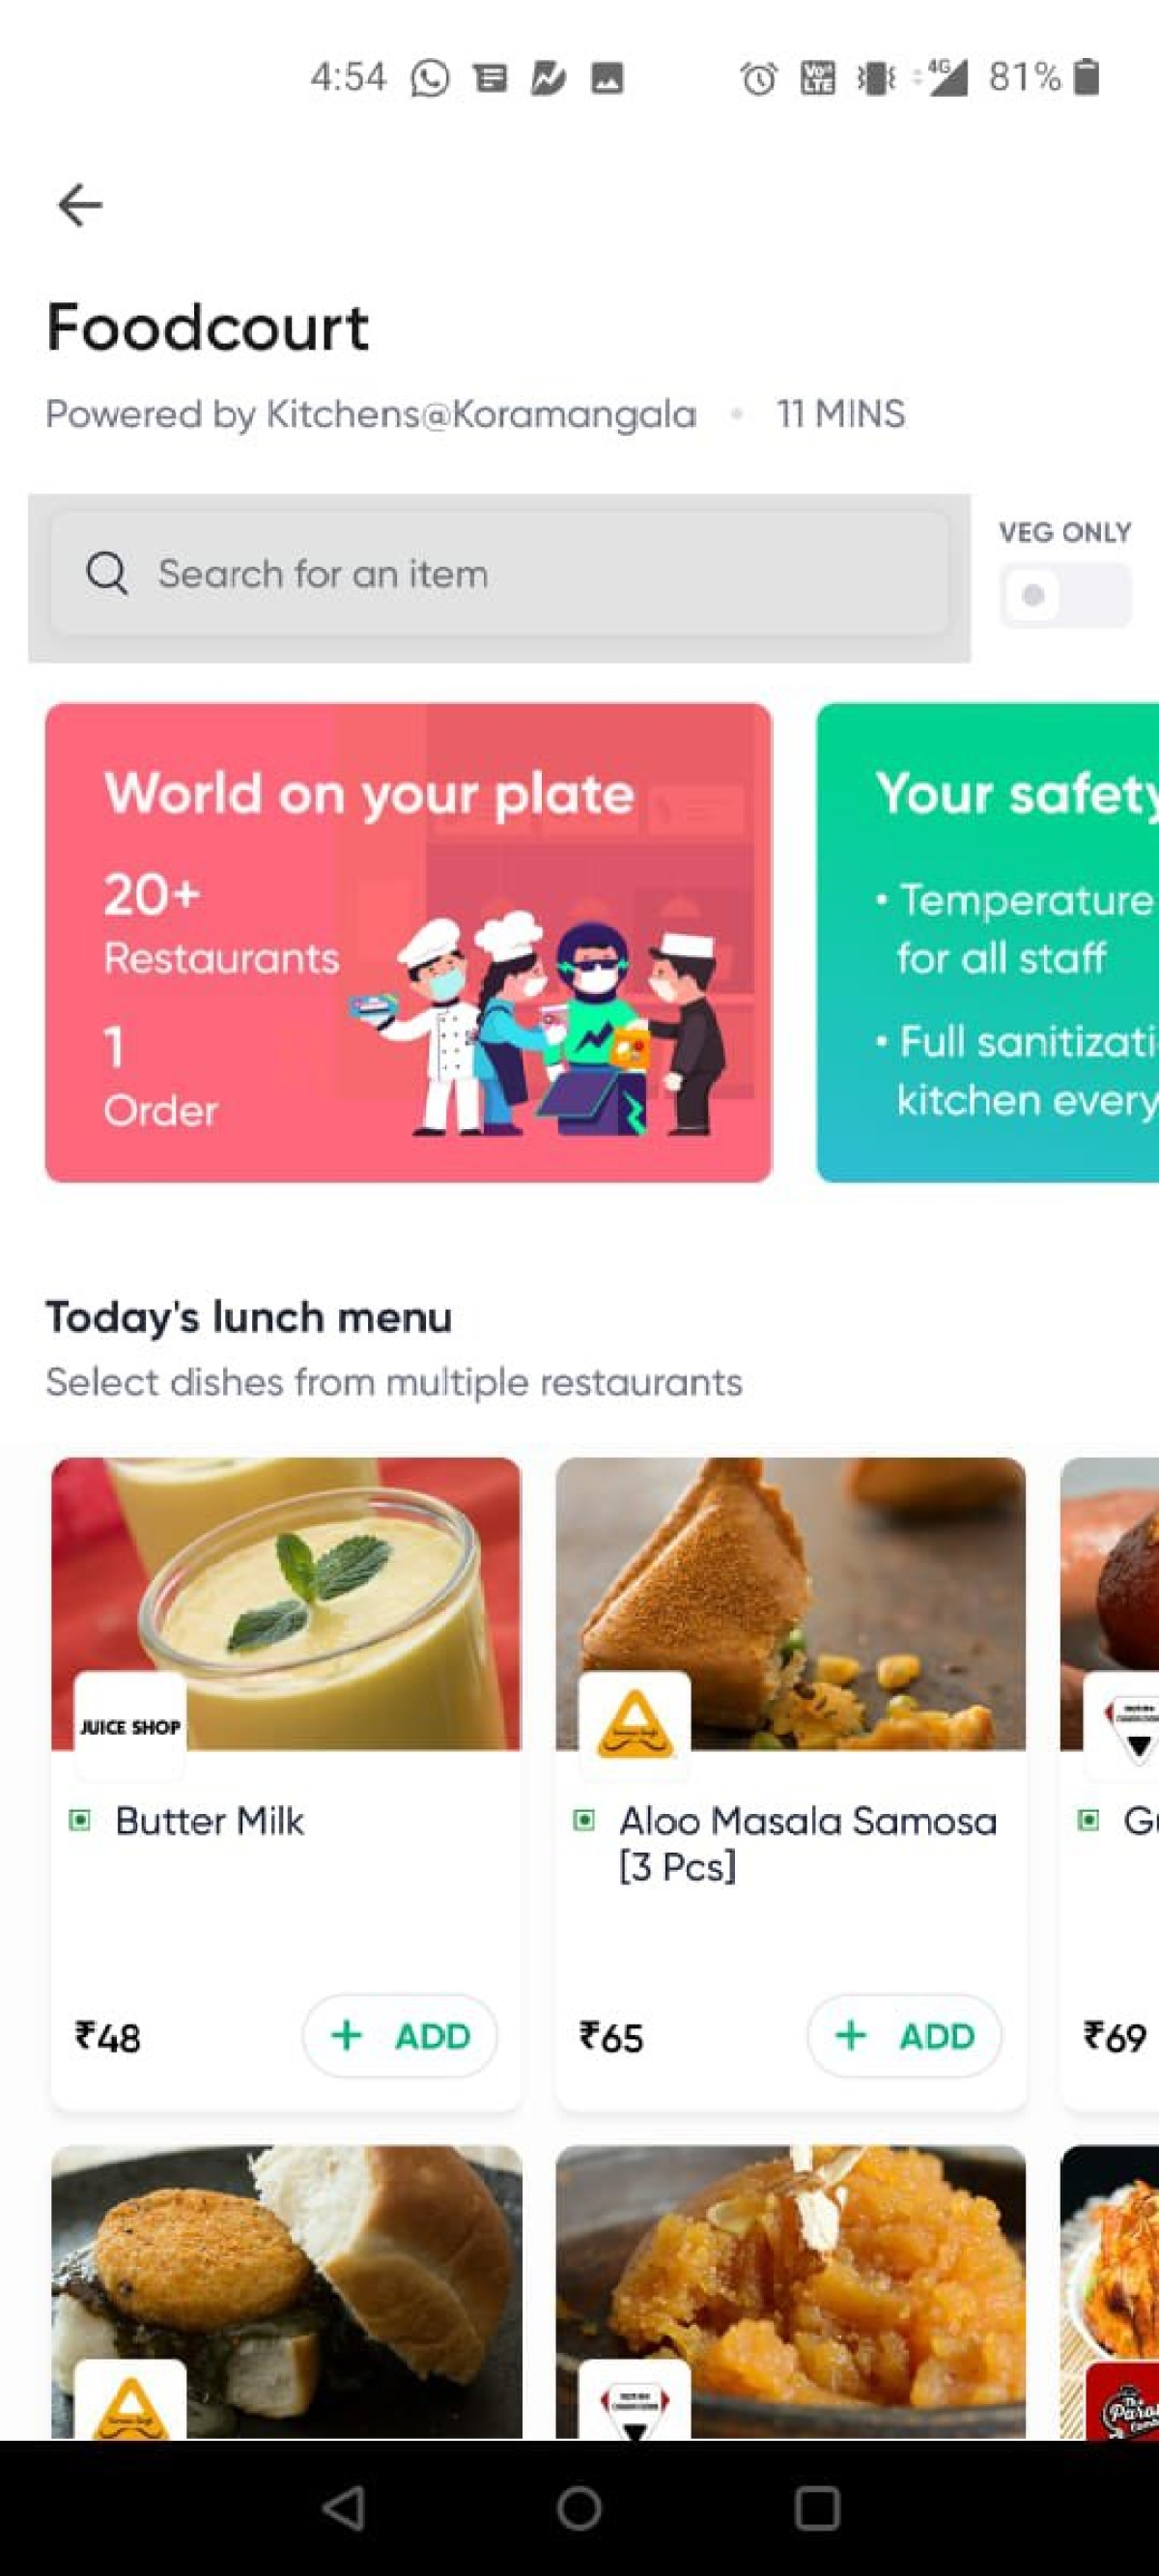 Dunzo launches 'Foodcourt' to let users order from multiple restaurants in a single order